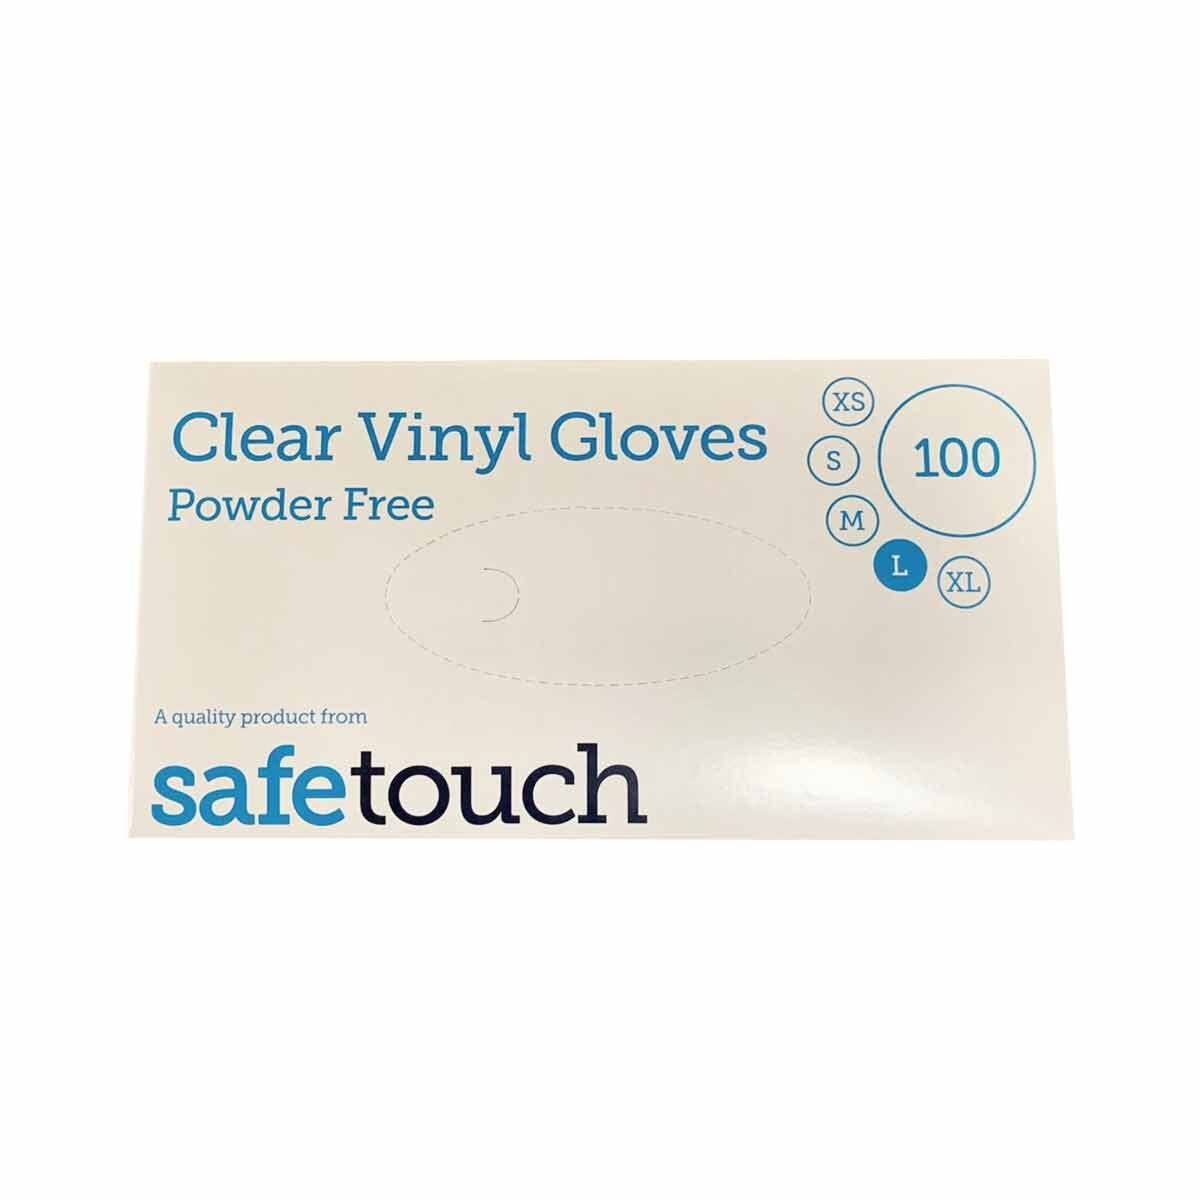 Powder Free Disposable Gloves Large Box of 100